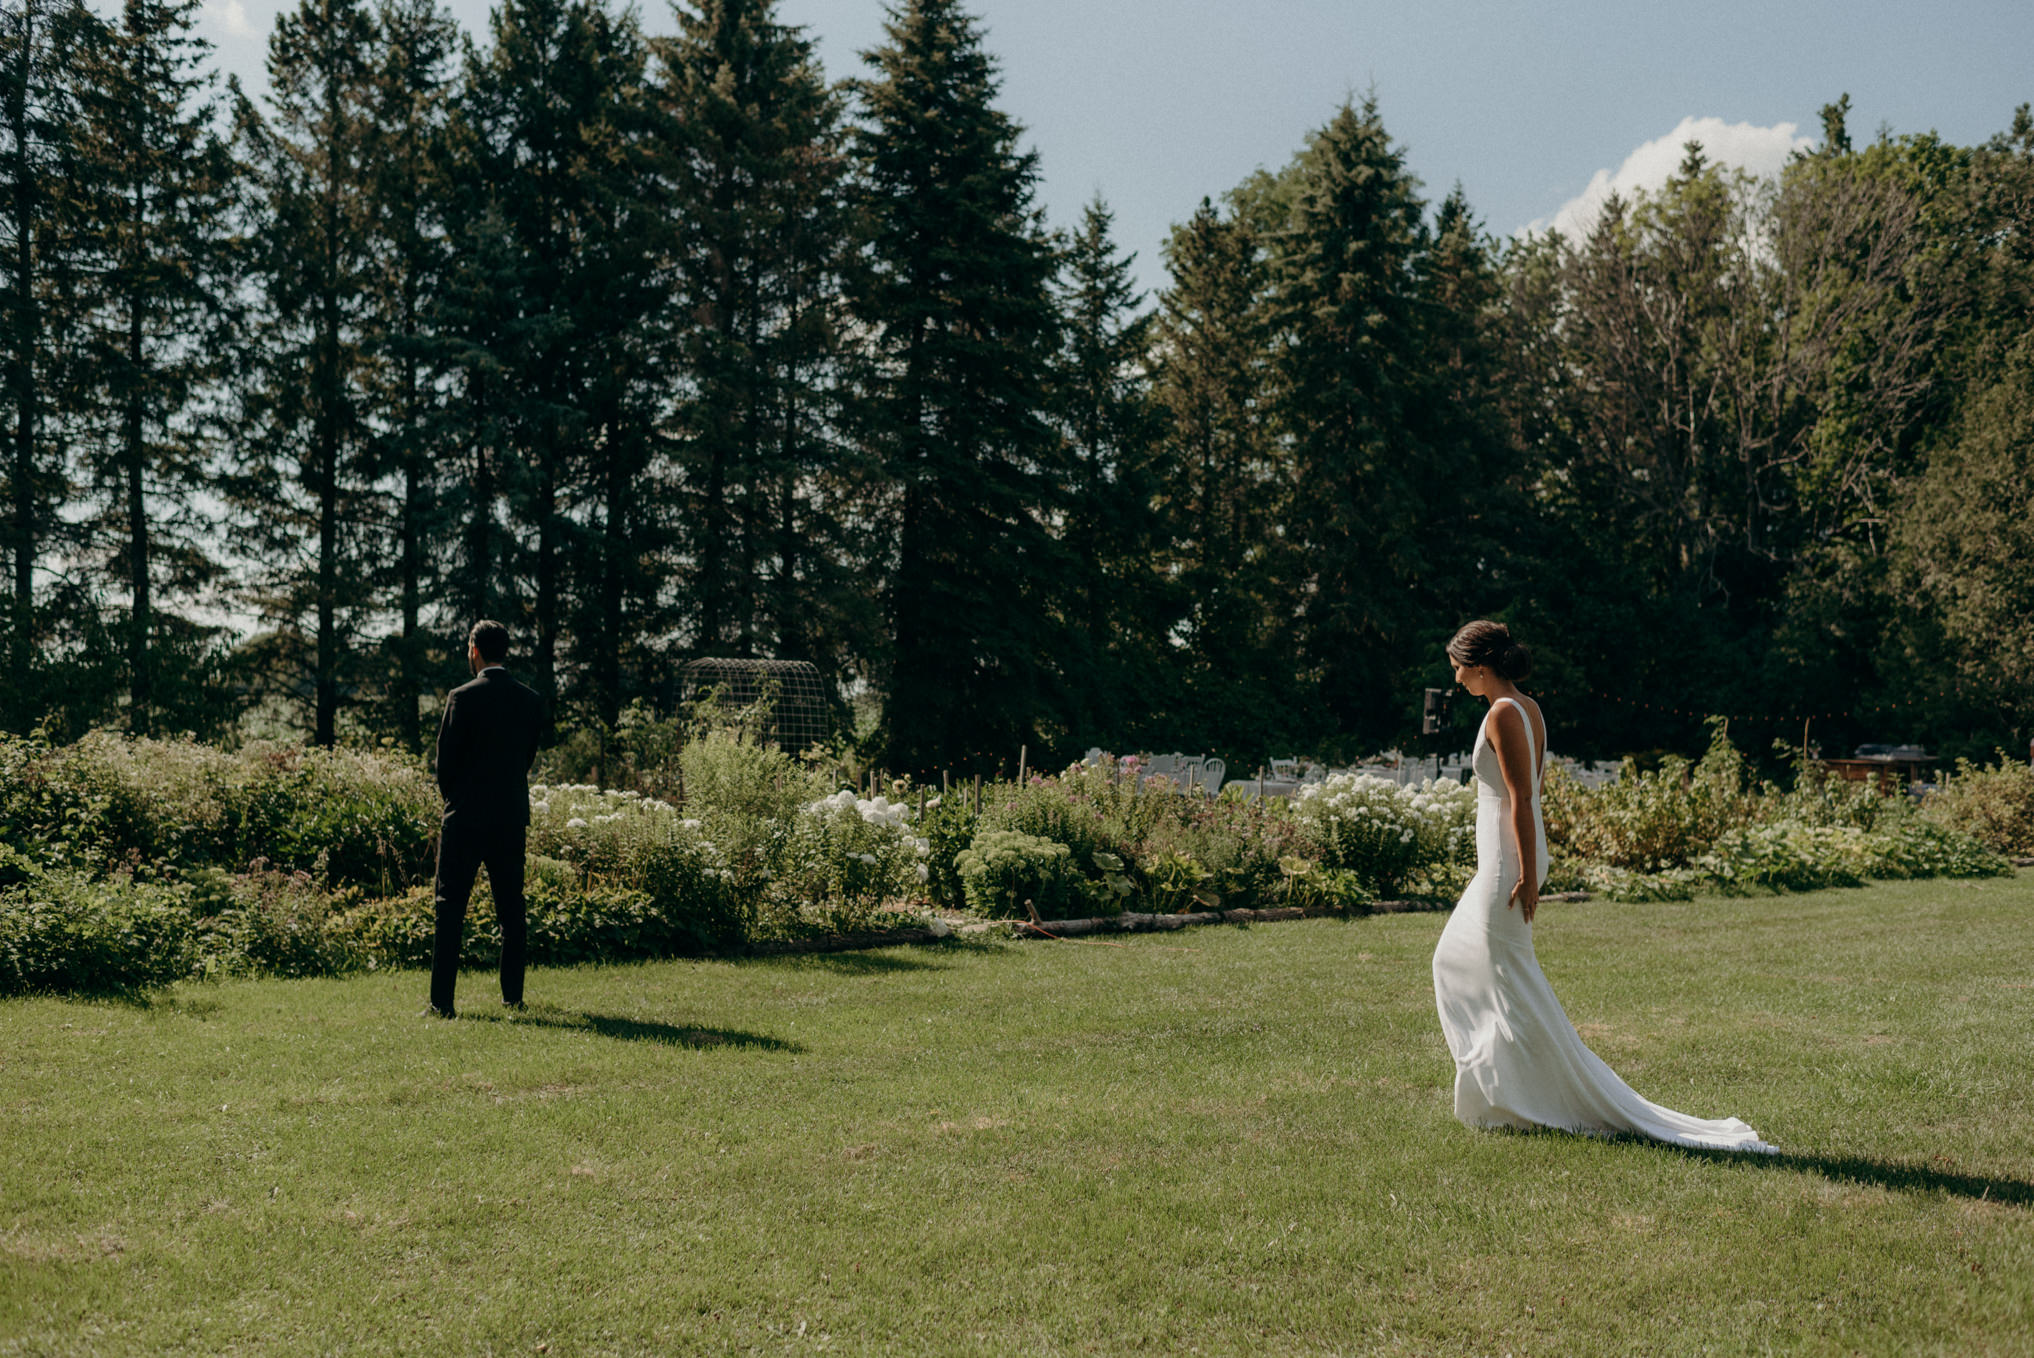 bride walking towards groom outside by garden for first look